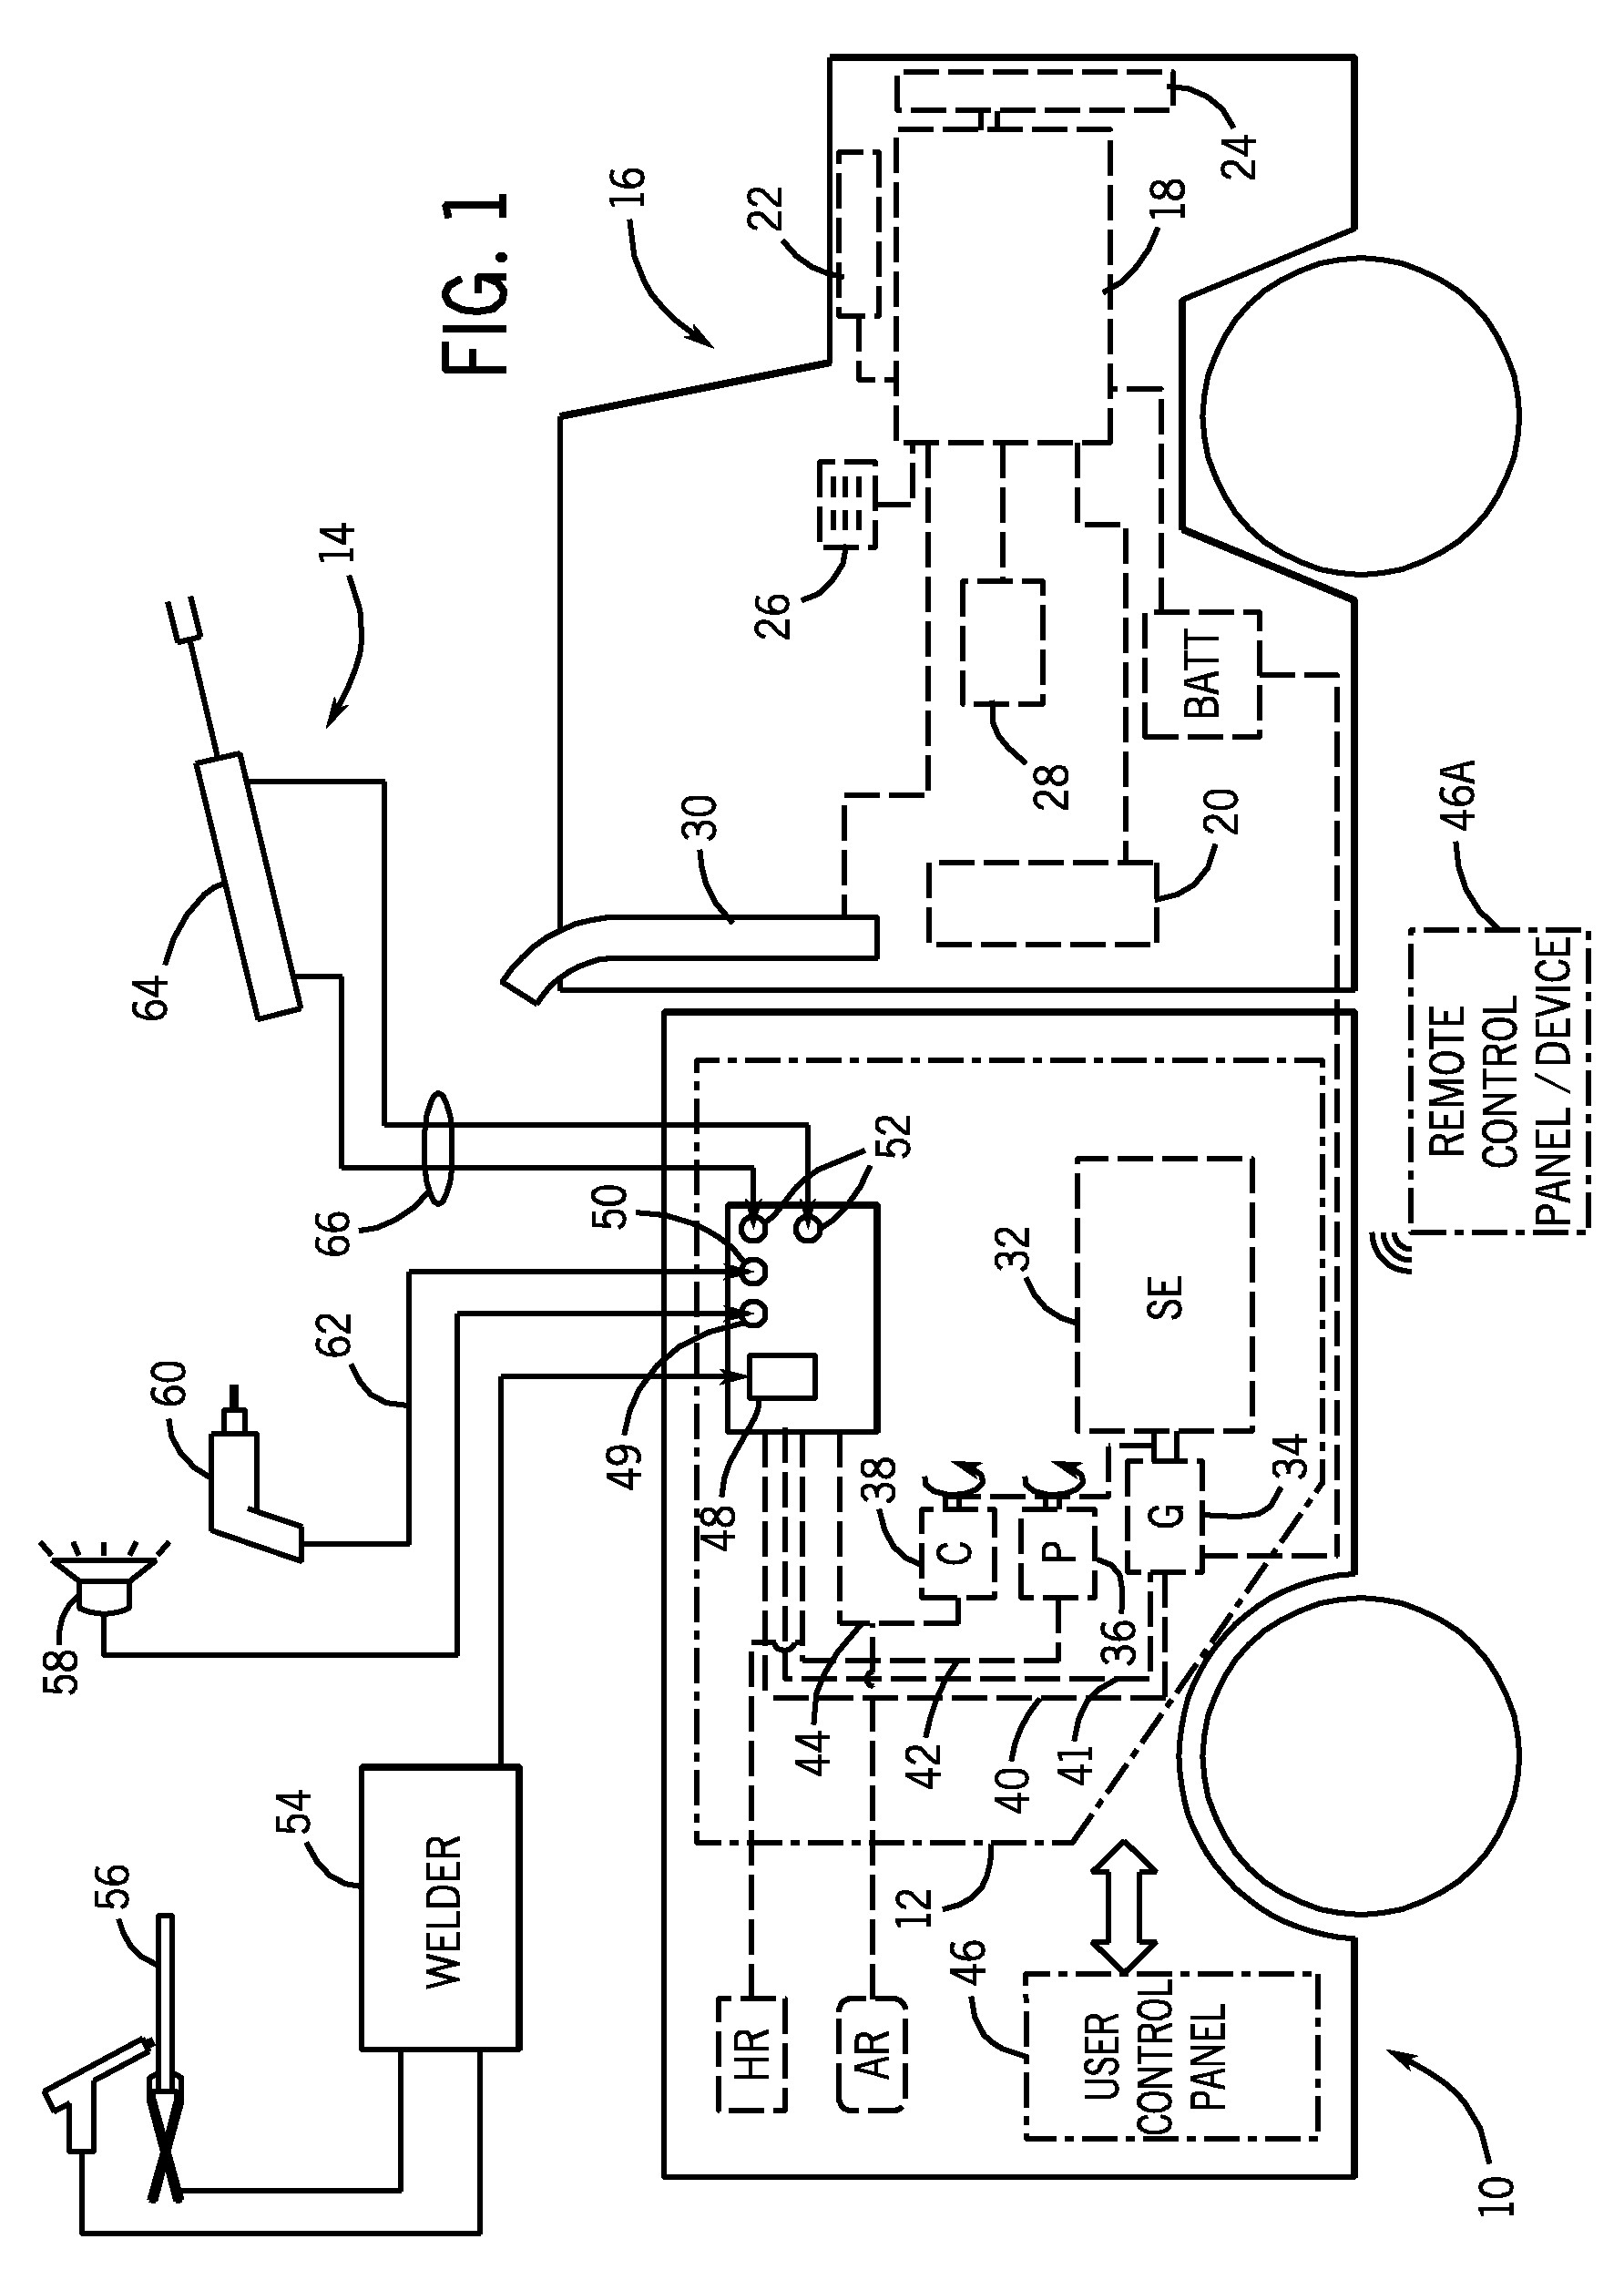 Wiring Manual PDF: 12v Wiring Diagram For Hydraulic Motor